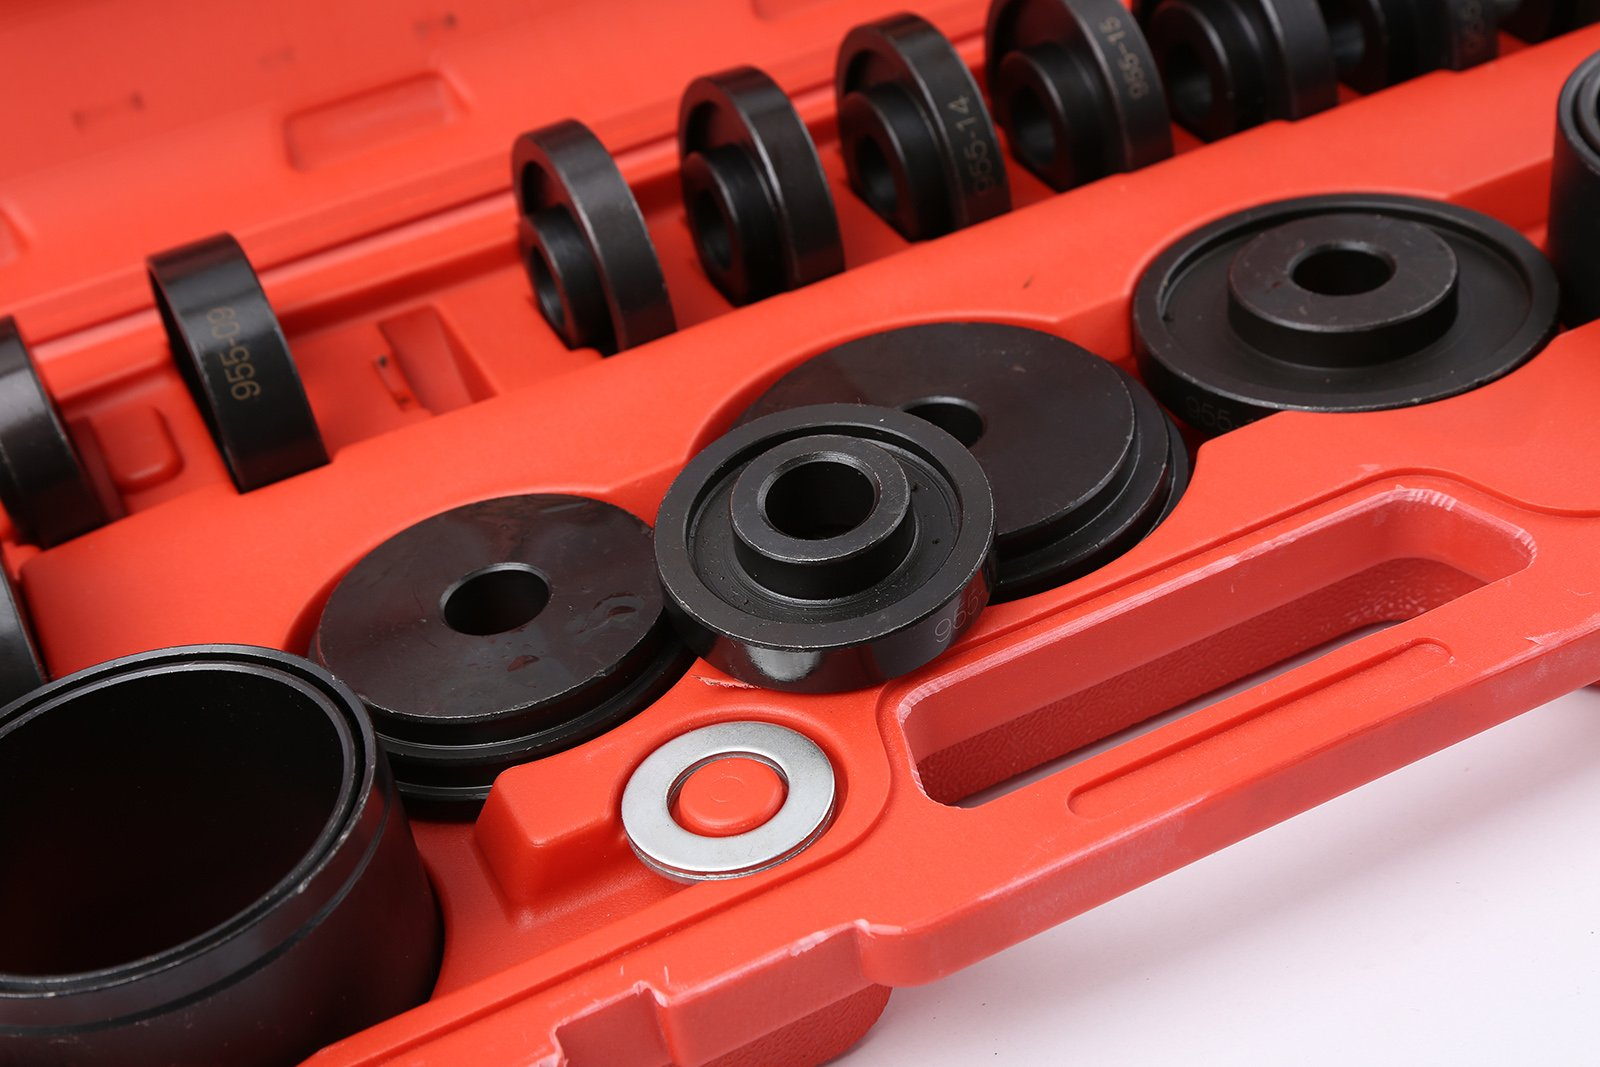 WIN.MAX 23 Pcs FWD Front Wheel Drive Bearing Adapters Puller Press Replacement Installer Removal Tool Kit by WIN.MAX (Image #8)